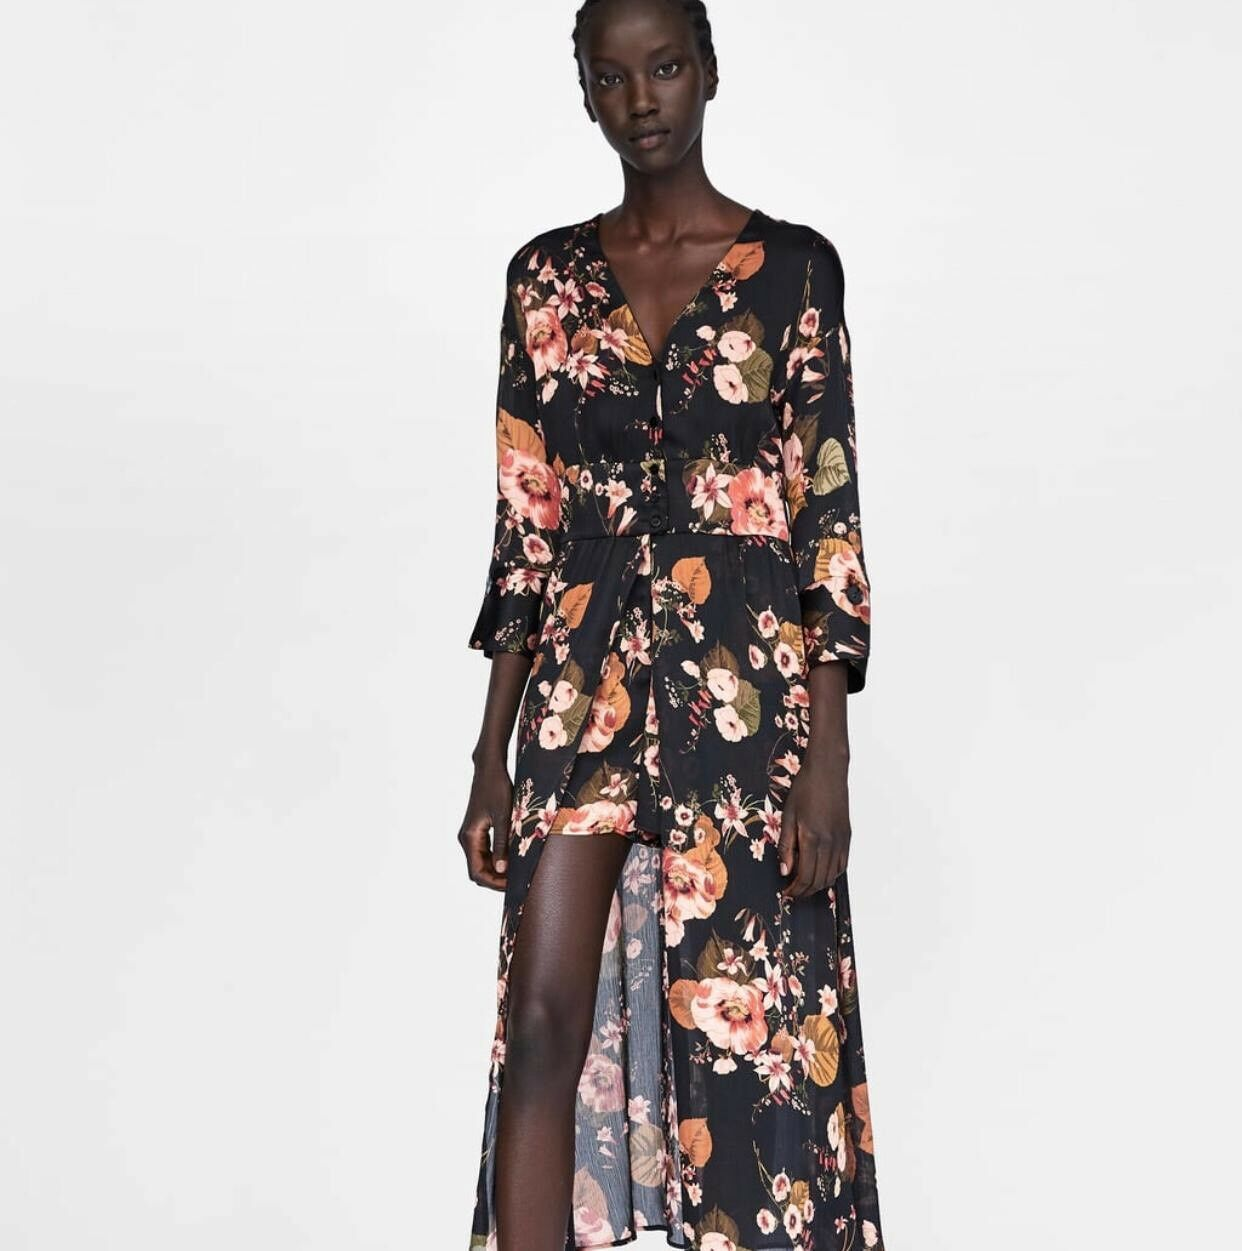 Zara Floral Print Jumpsuit Dress Size S